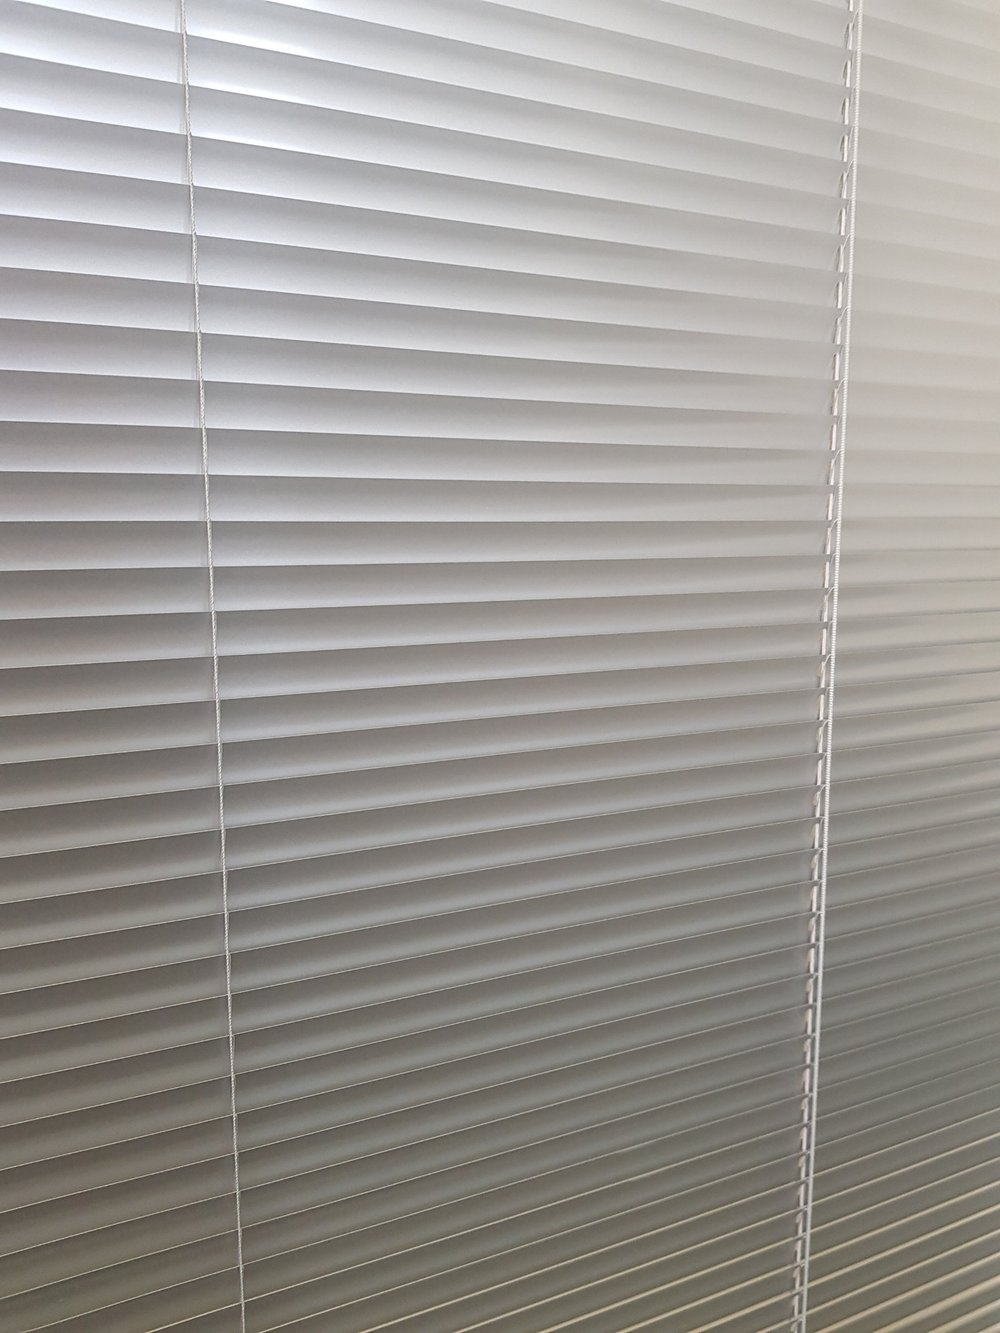 Micro Venetians - Choose from 16mm and 25mm Aluminium Venetian slats for a sleek, modern option. For a minimalist look choose from a range of neutral and metallic finishes.